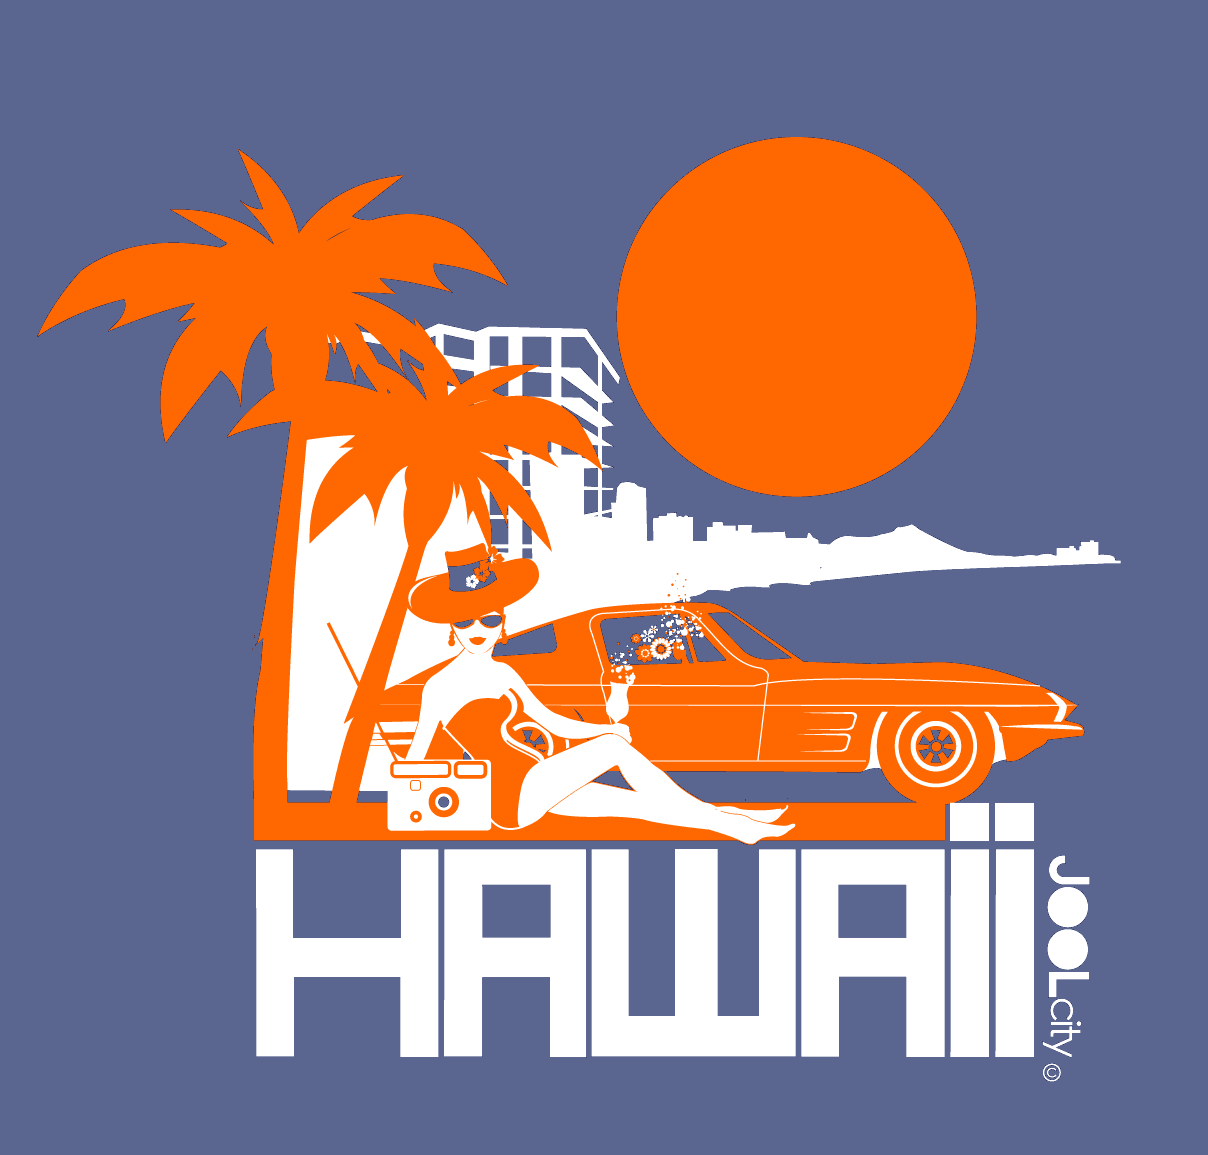 Hawaii  Beach Bombshell  Women's   Short Sleeve T-Shirt T-Shirt  designed by JOOLcity